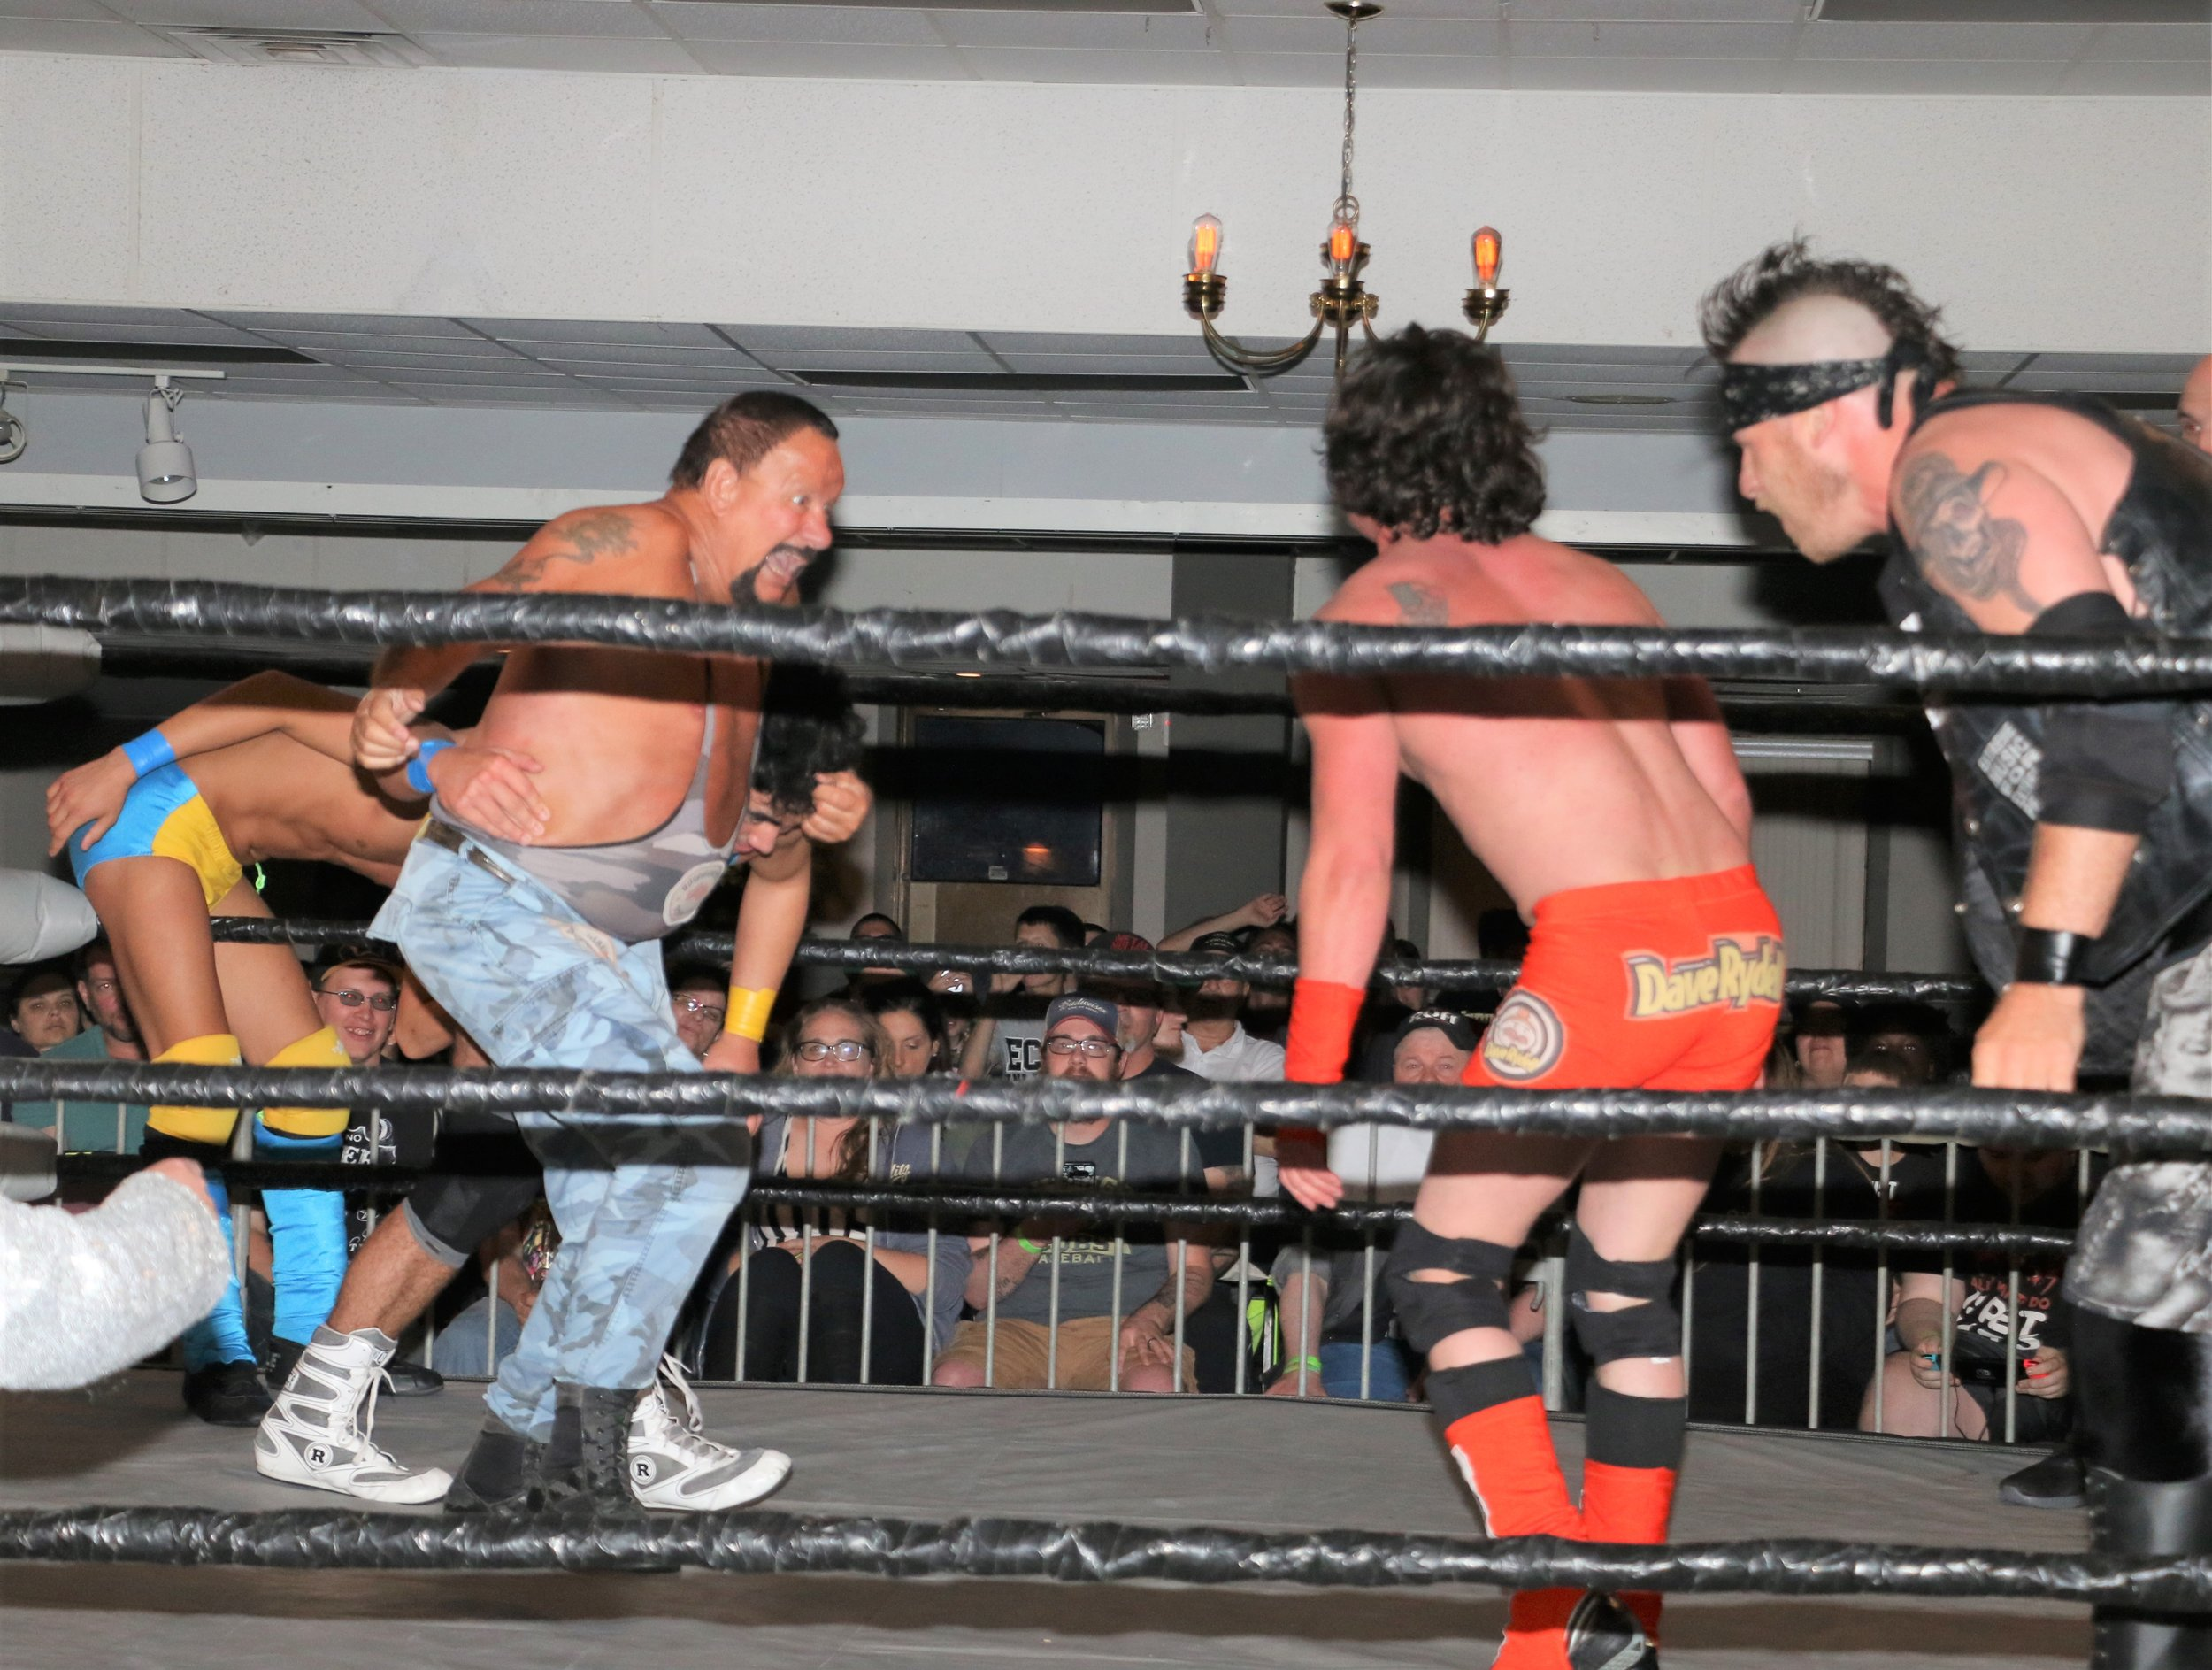 Bushwhacker Luke looks to deliver the battering ram to Dave Rydell during the six-man tag team match.